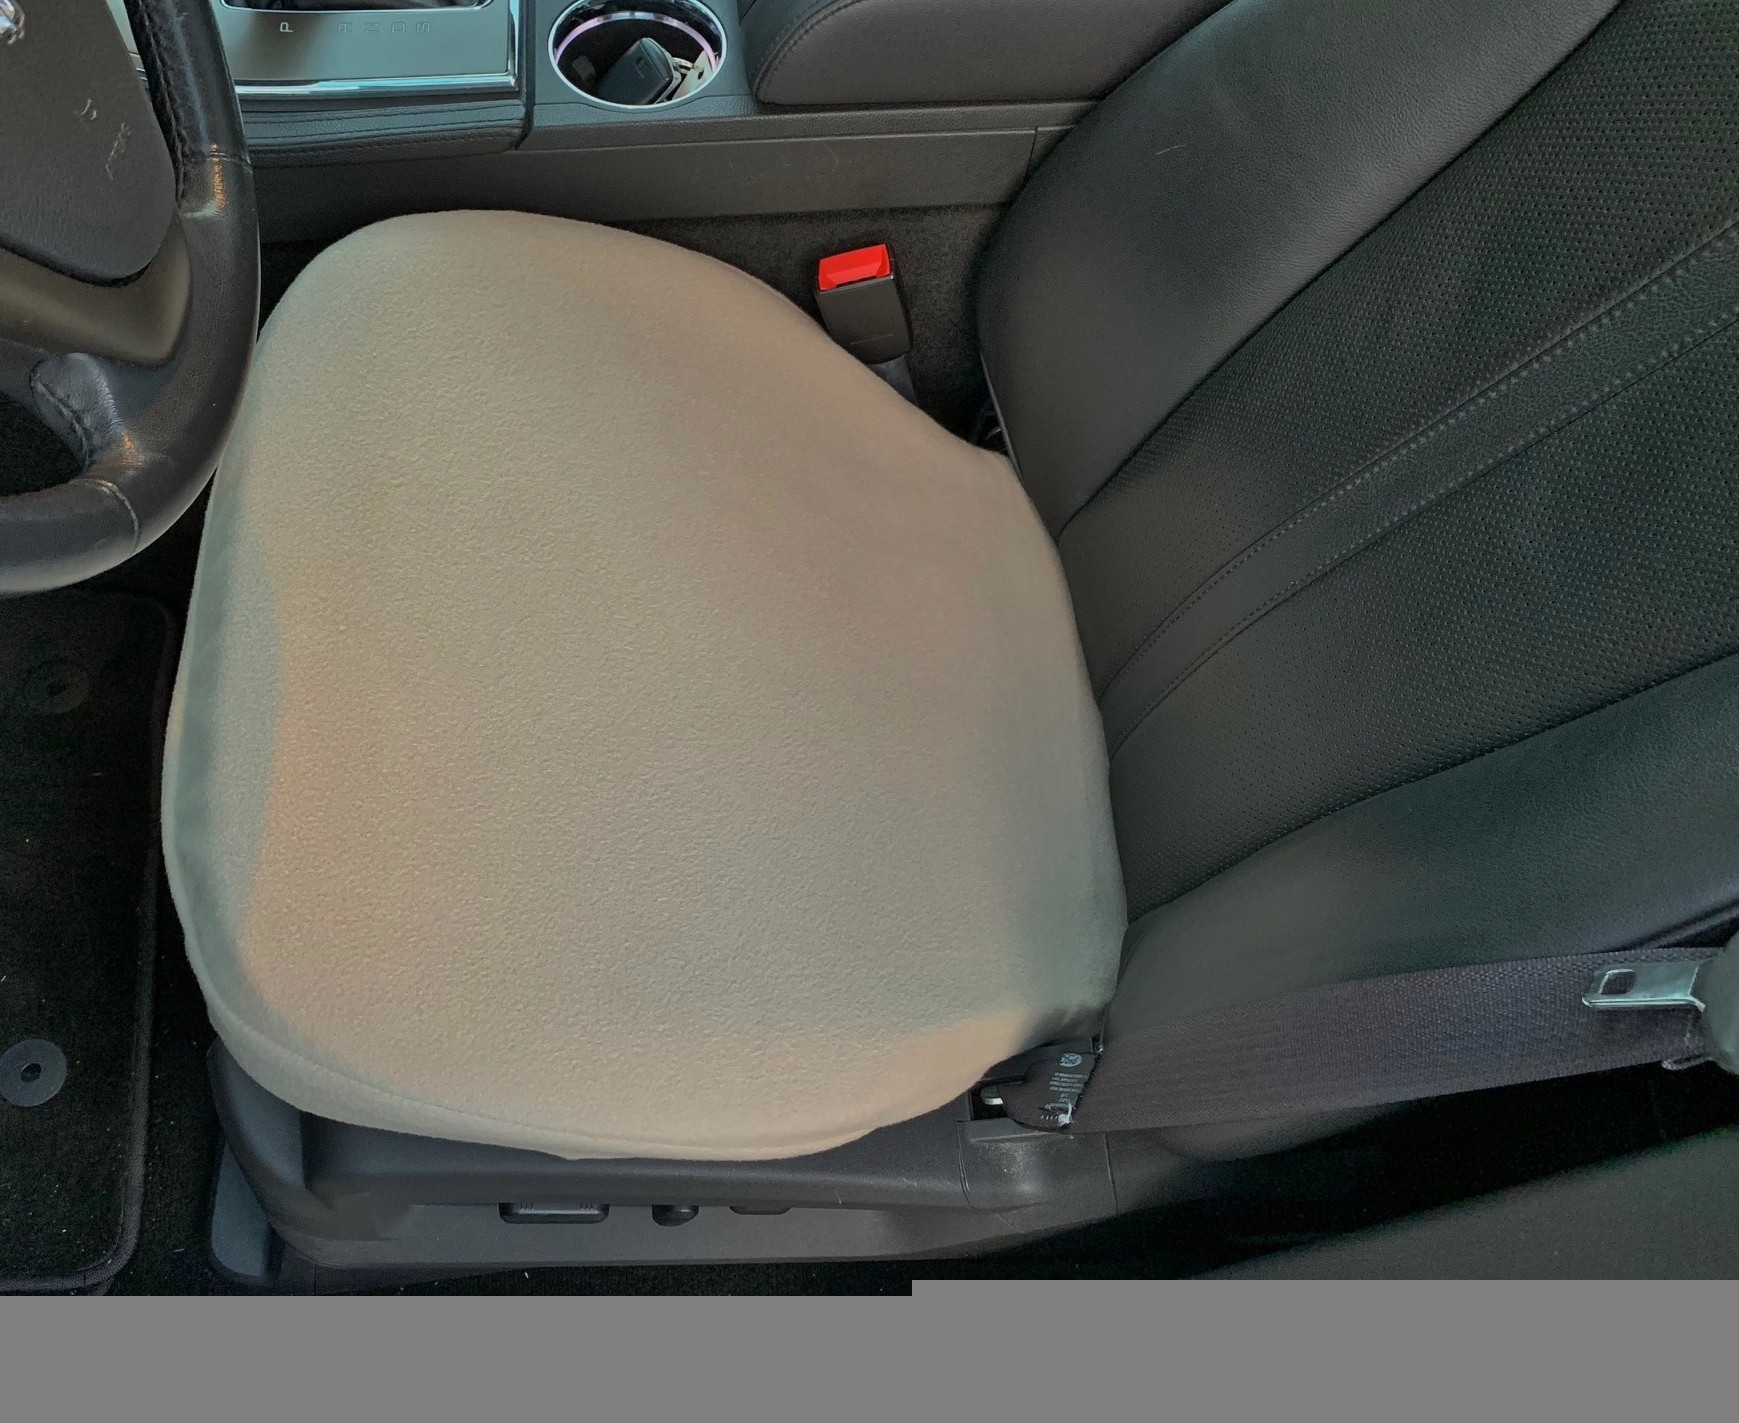 Fleece Bottom Seat Cover for Ford F-150, F-250, F-350 2000-19 (PAIR)